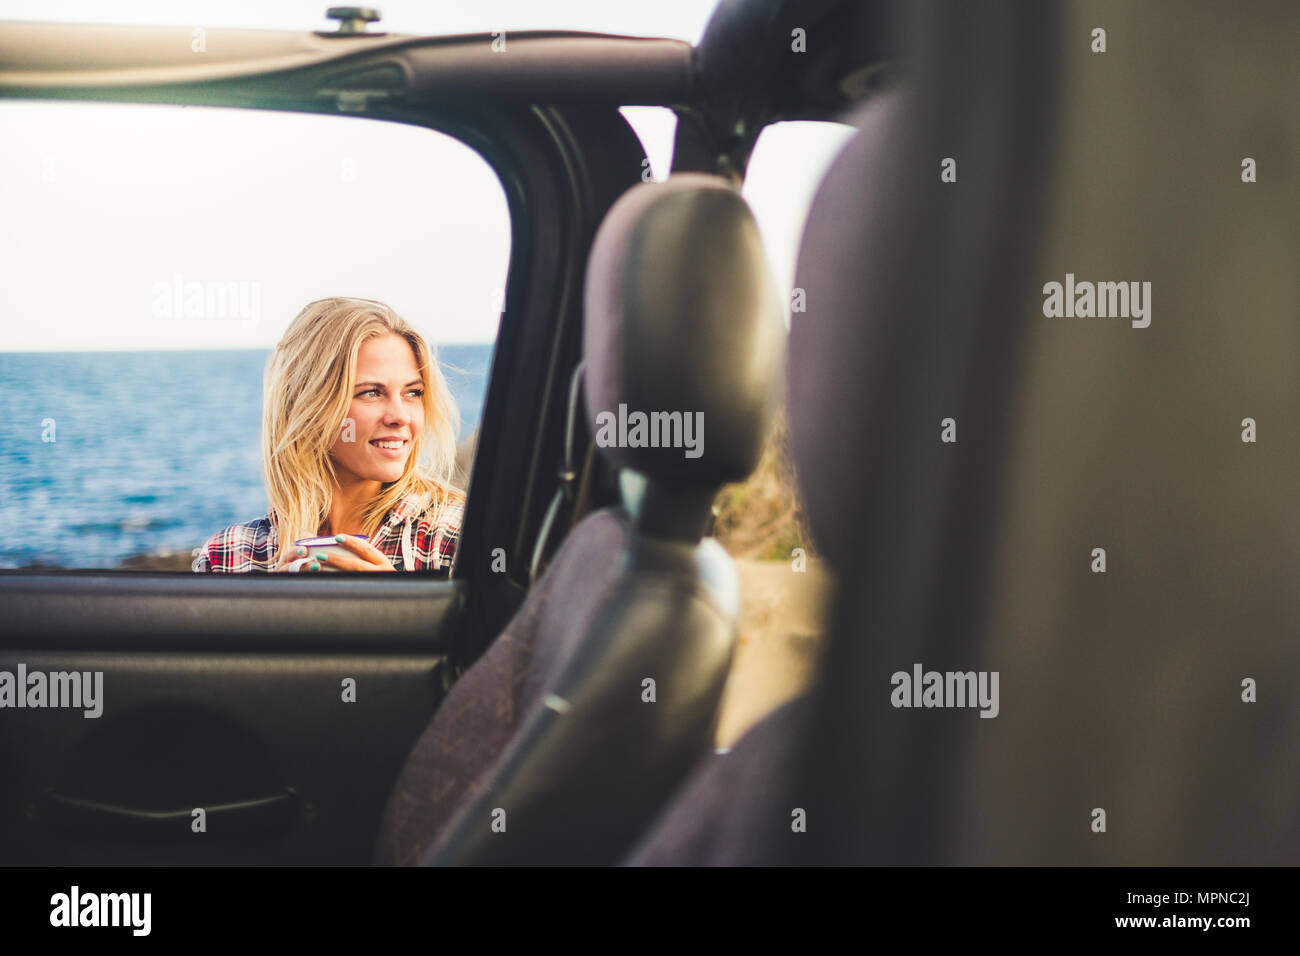 traveler blonde long hair girl take a mug with hot drink coffee or tea outside an open off road car. Ocean background and nice smile. Indipendent trav - Stock Image